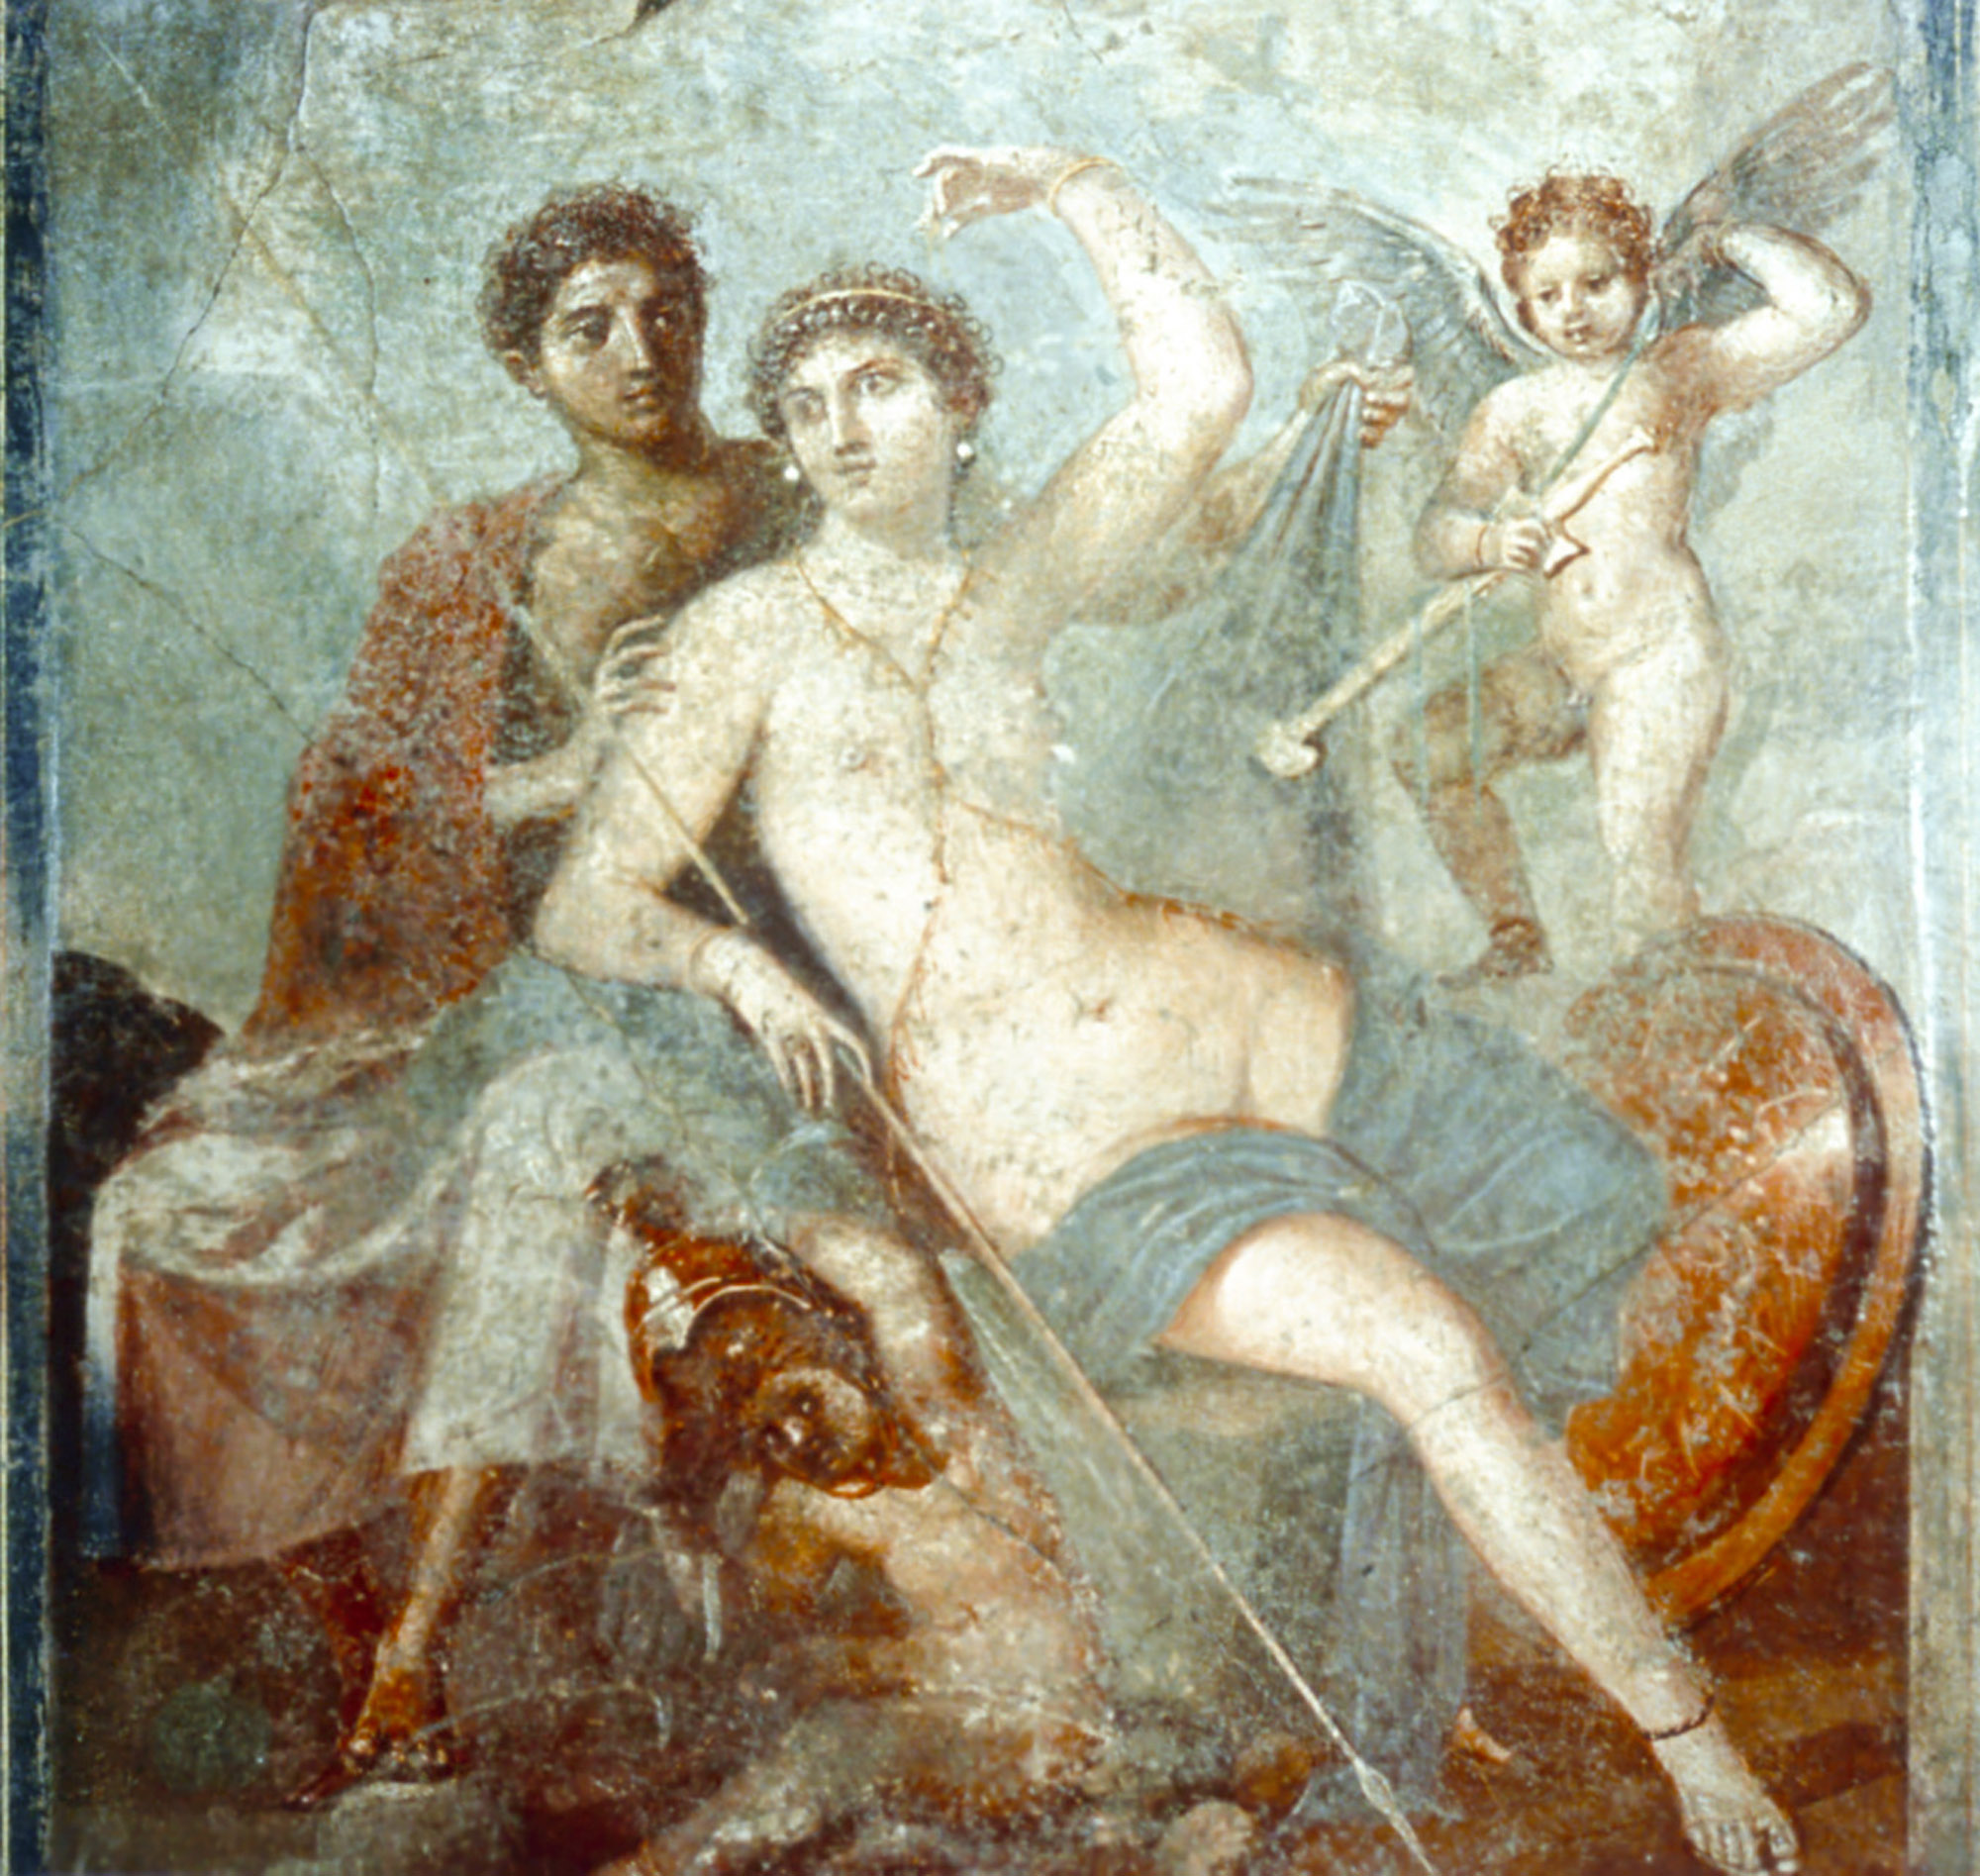 Mars and Venus Fresco from Pompeii